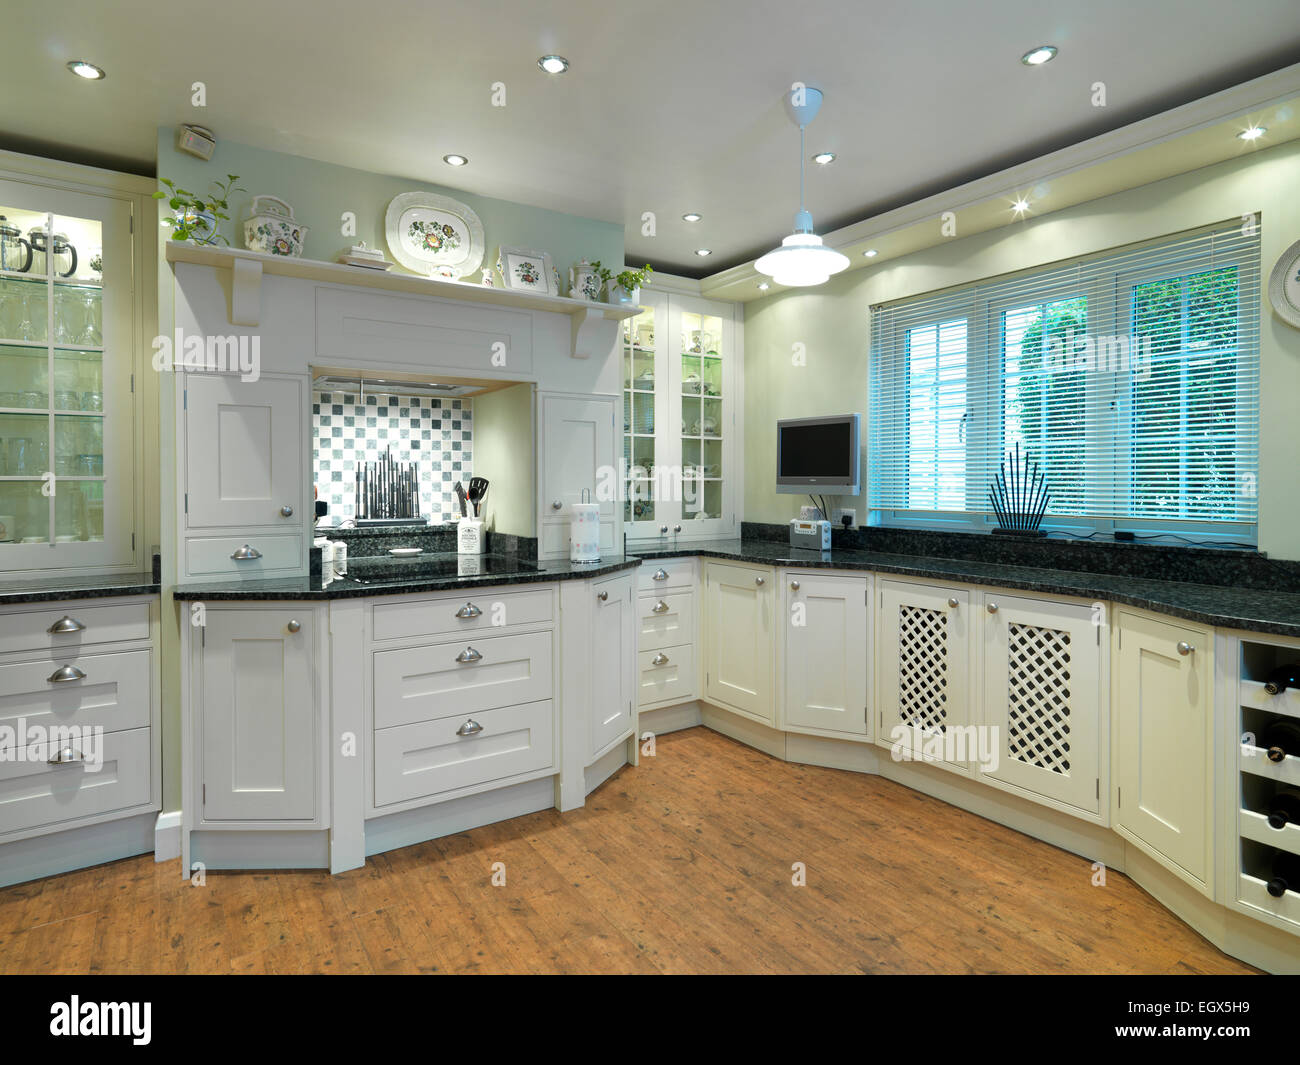 Traditional Style Kitchen With White Units Uk Home Stock Photo Alamy